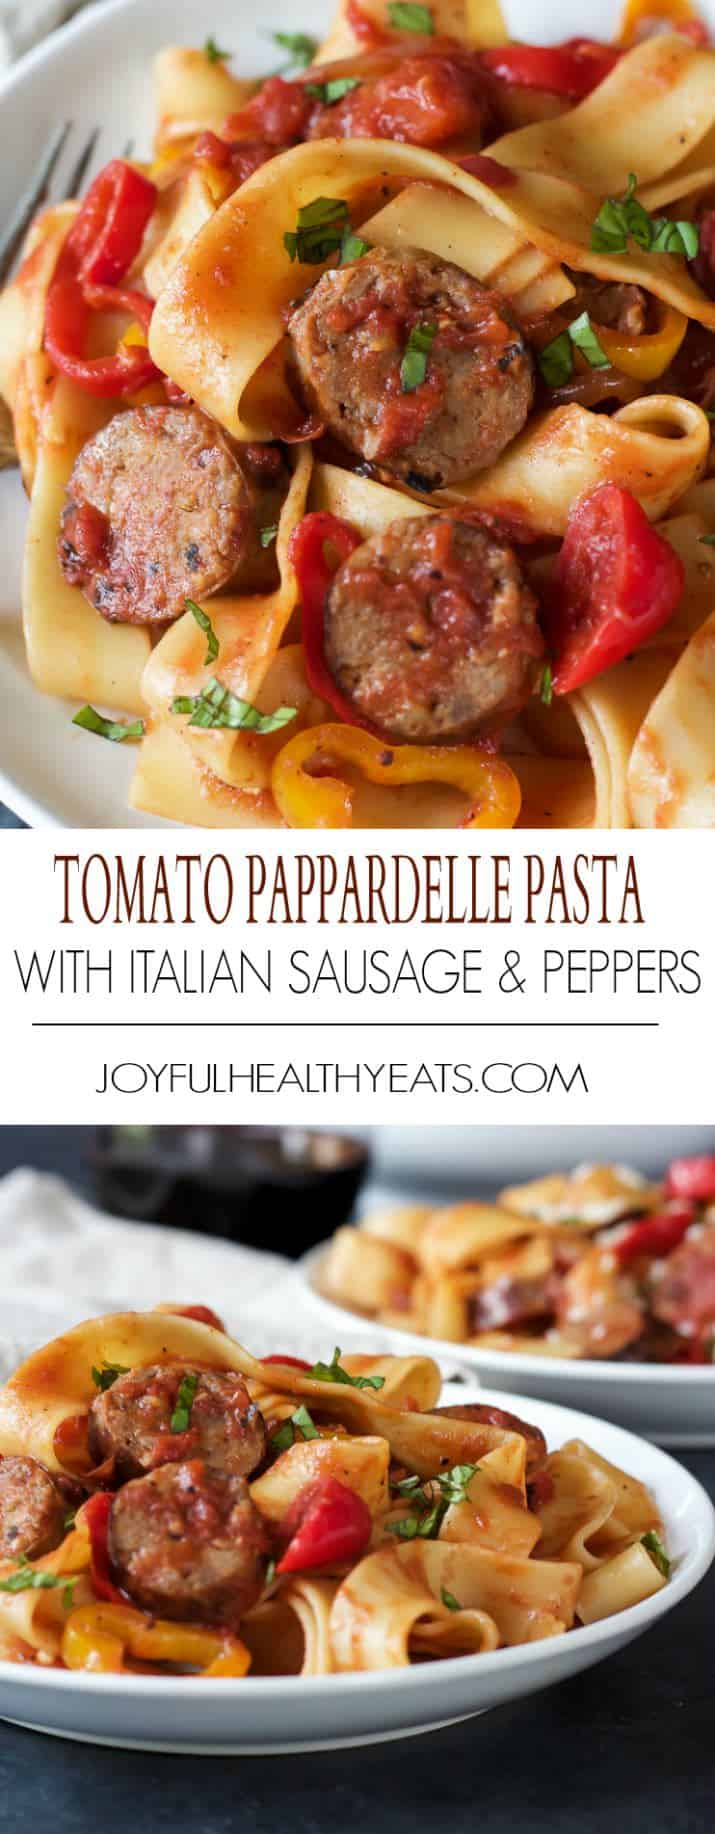 Title Image for Tomato Pappardelle Pasta with Italian Sausage and Peppers